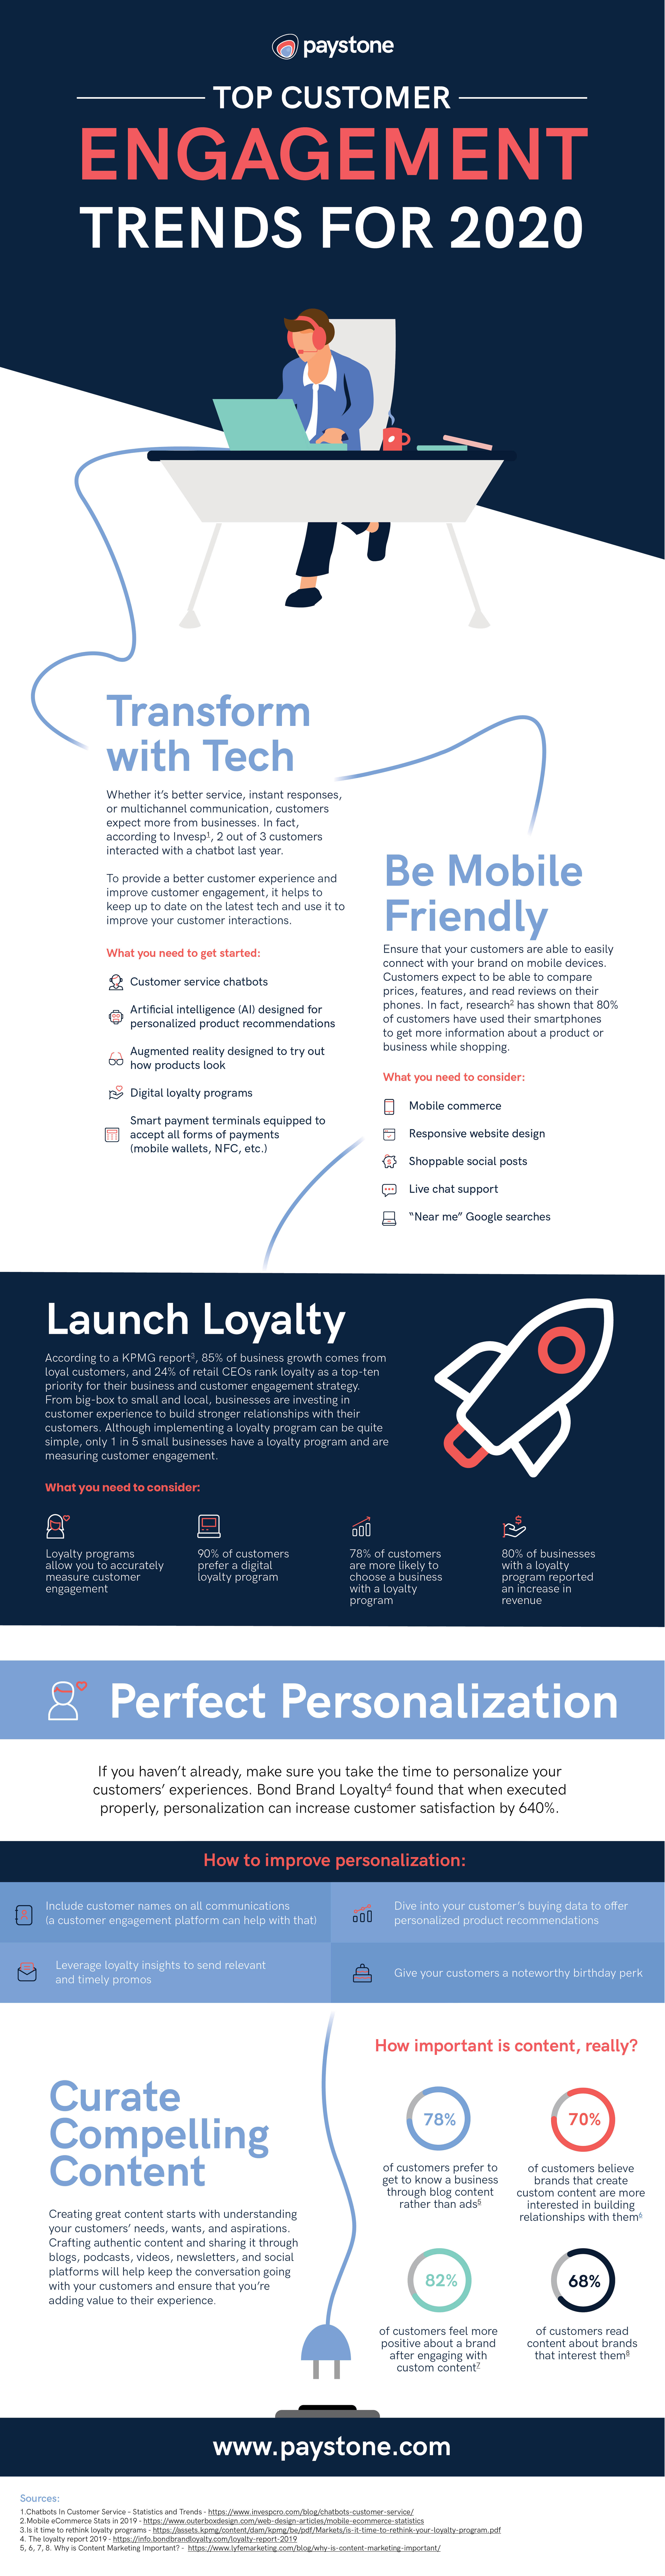 Top Customer Engagement Trends for 2020 Infographic